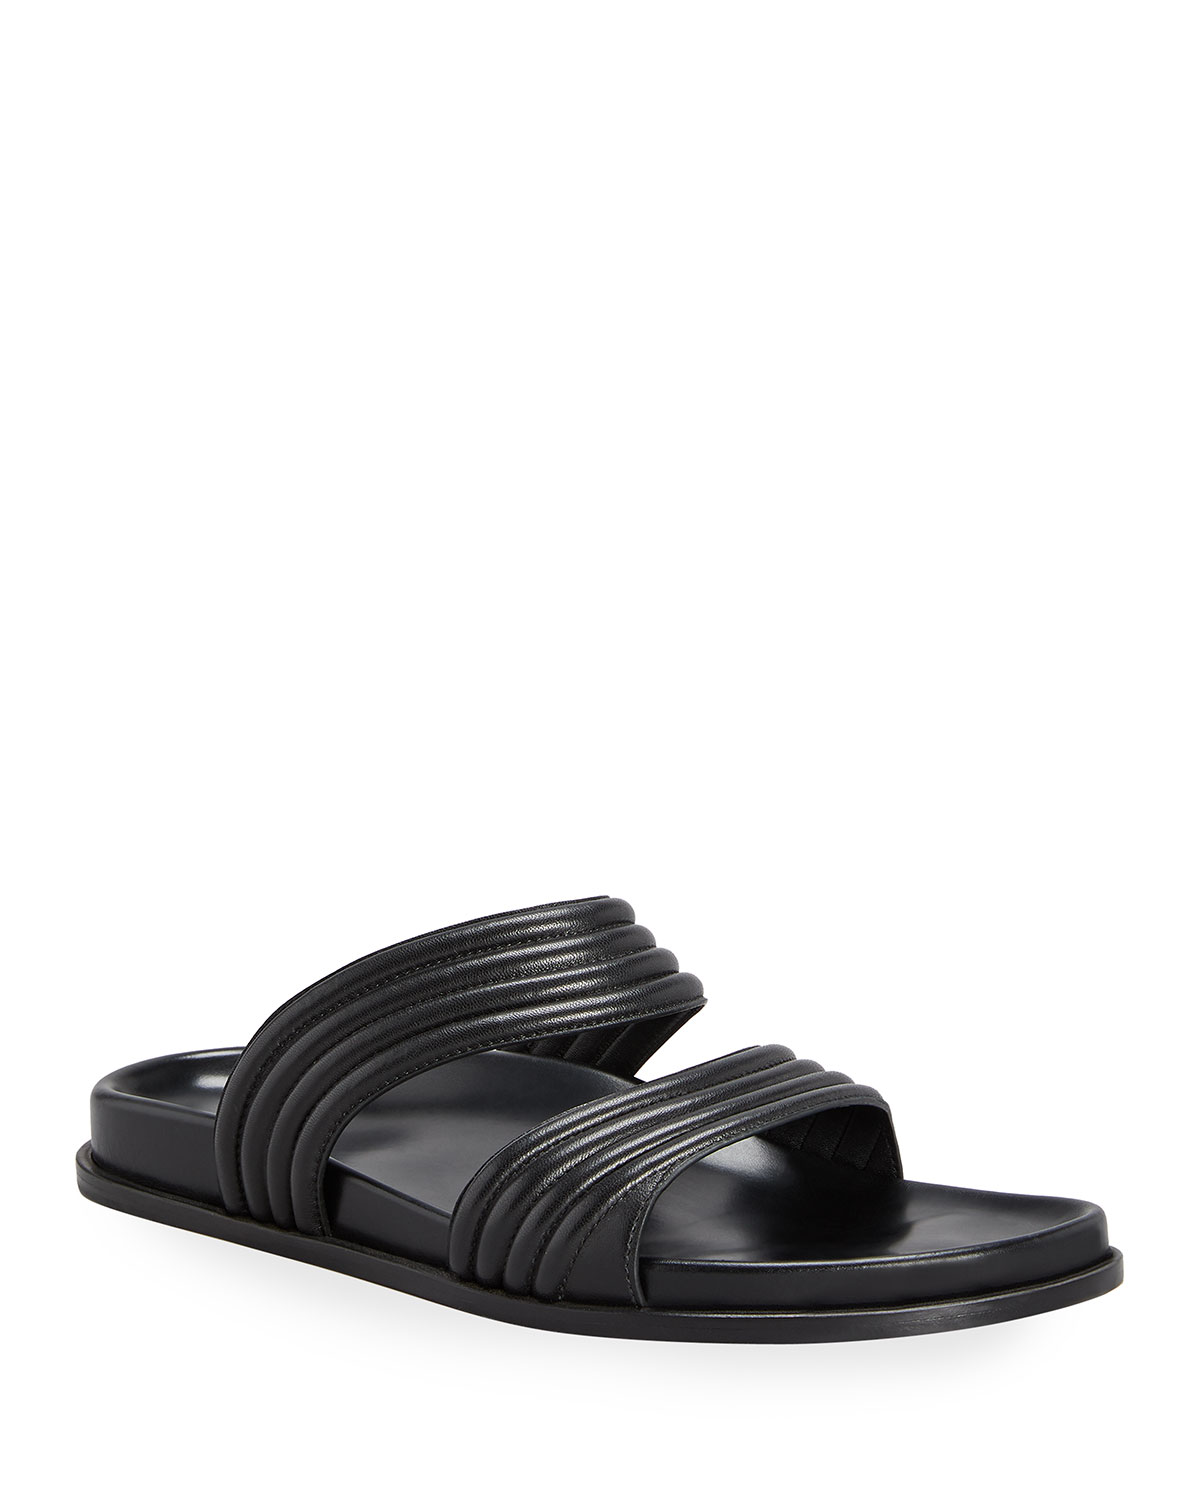 Wavy Leather Two Band Slide Sandals